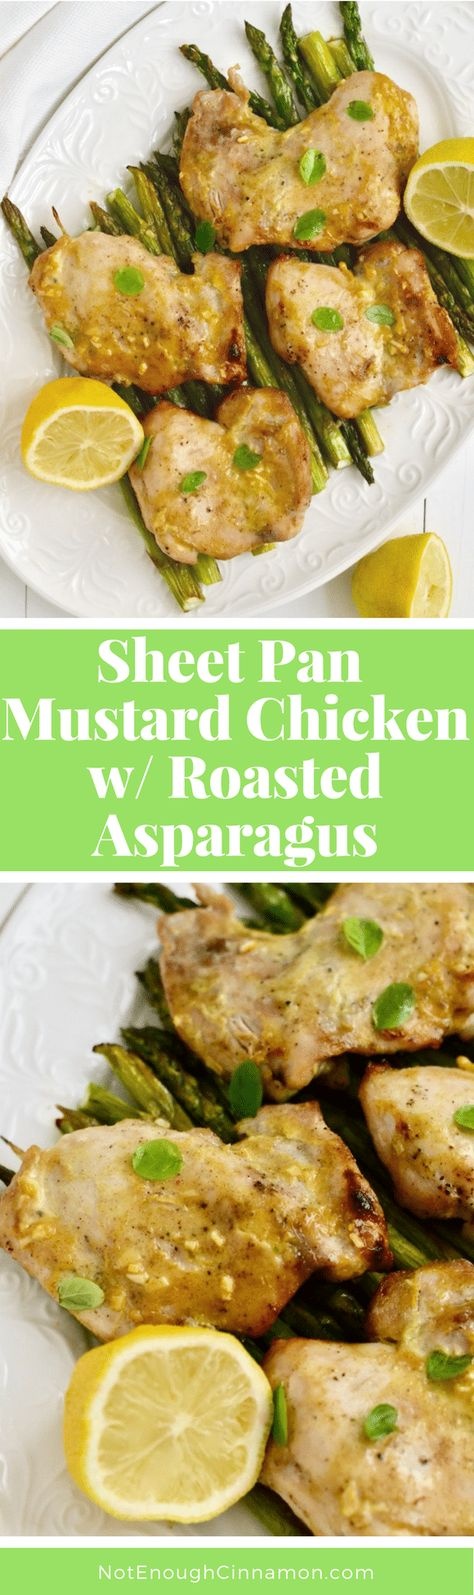 Sheet Pan Mustard Chicken with Roasted Asparagus   Succulent oven-baked Maple Mustard-glazed Chicken Thighs and roasted asparagus all made in one sheet pan! An easy and healthy chicken dinner perfect for spring! #chickendinner, #easyrecipes, #cleaneating, #realfood, #glutenfree, #onepan